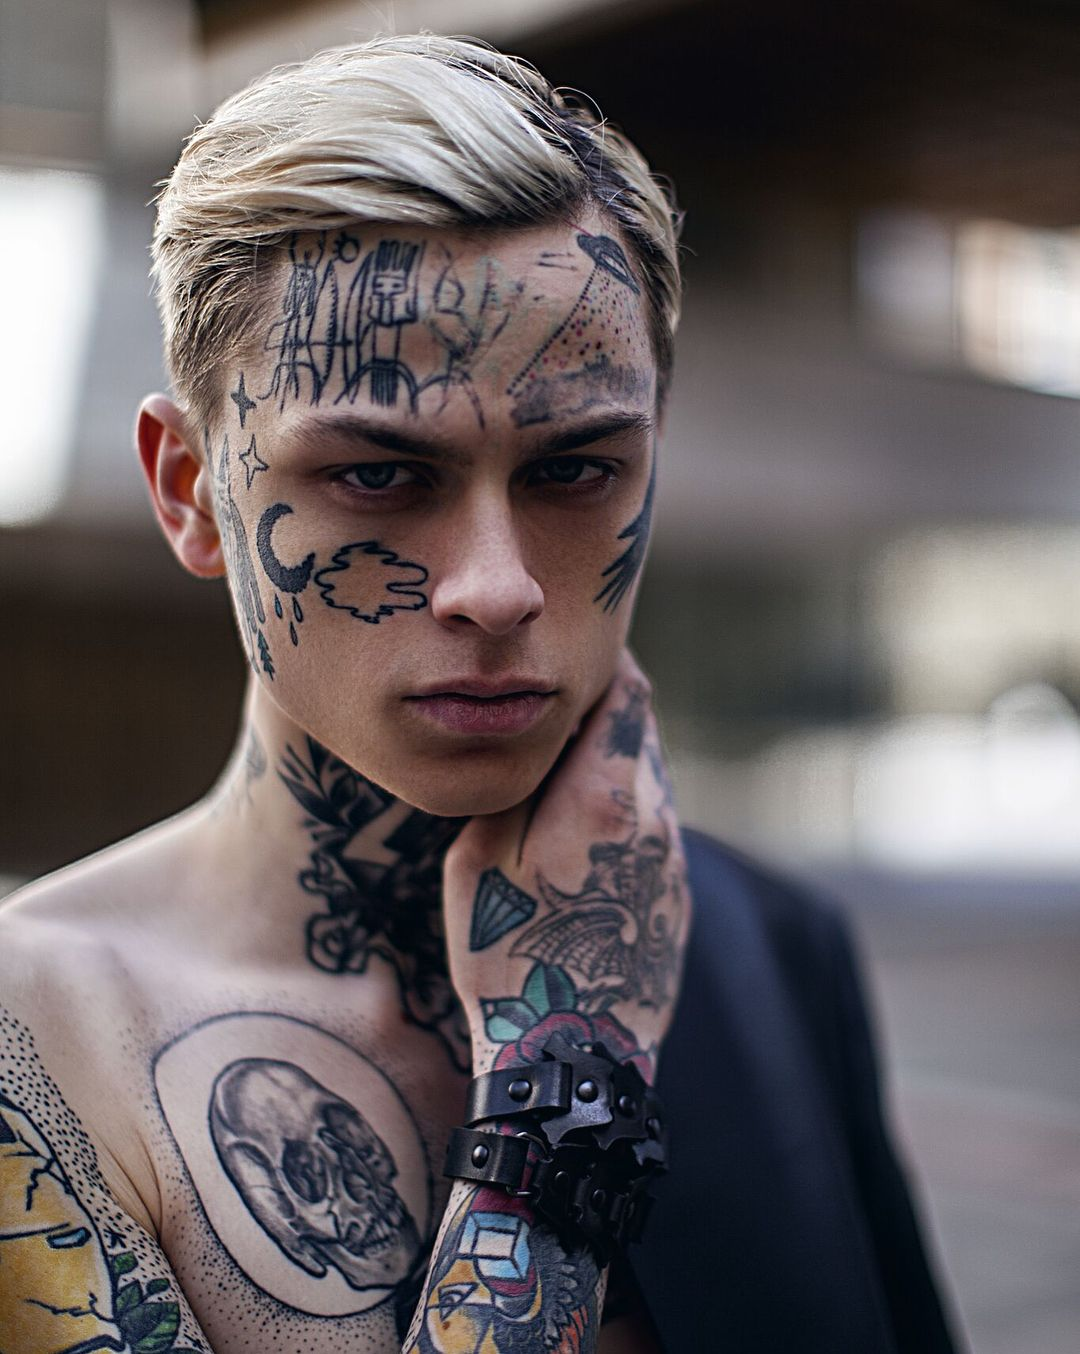 Cool face tattoo for young boy Model laviedekirill